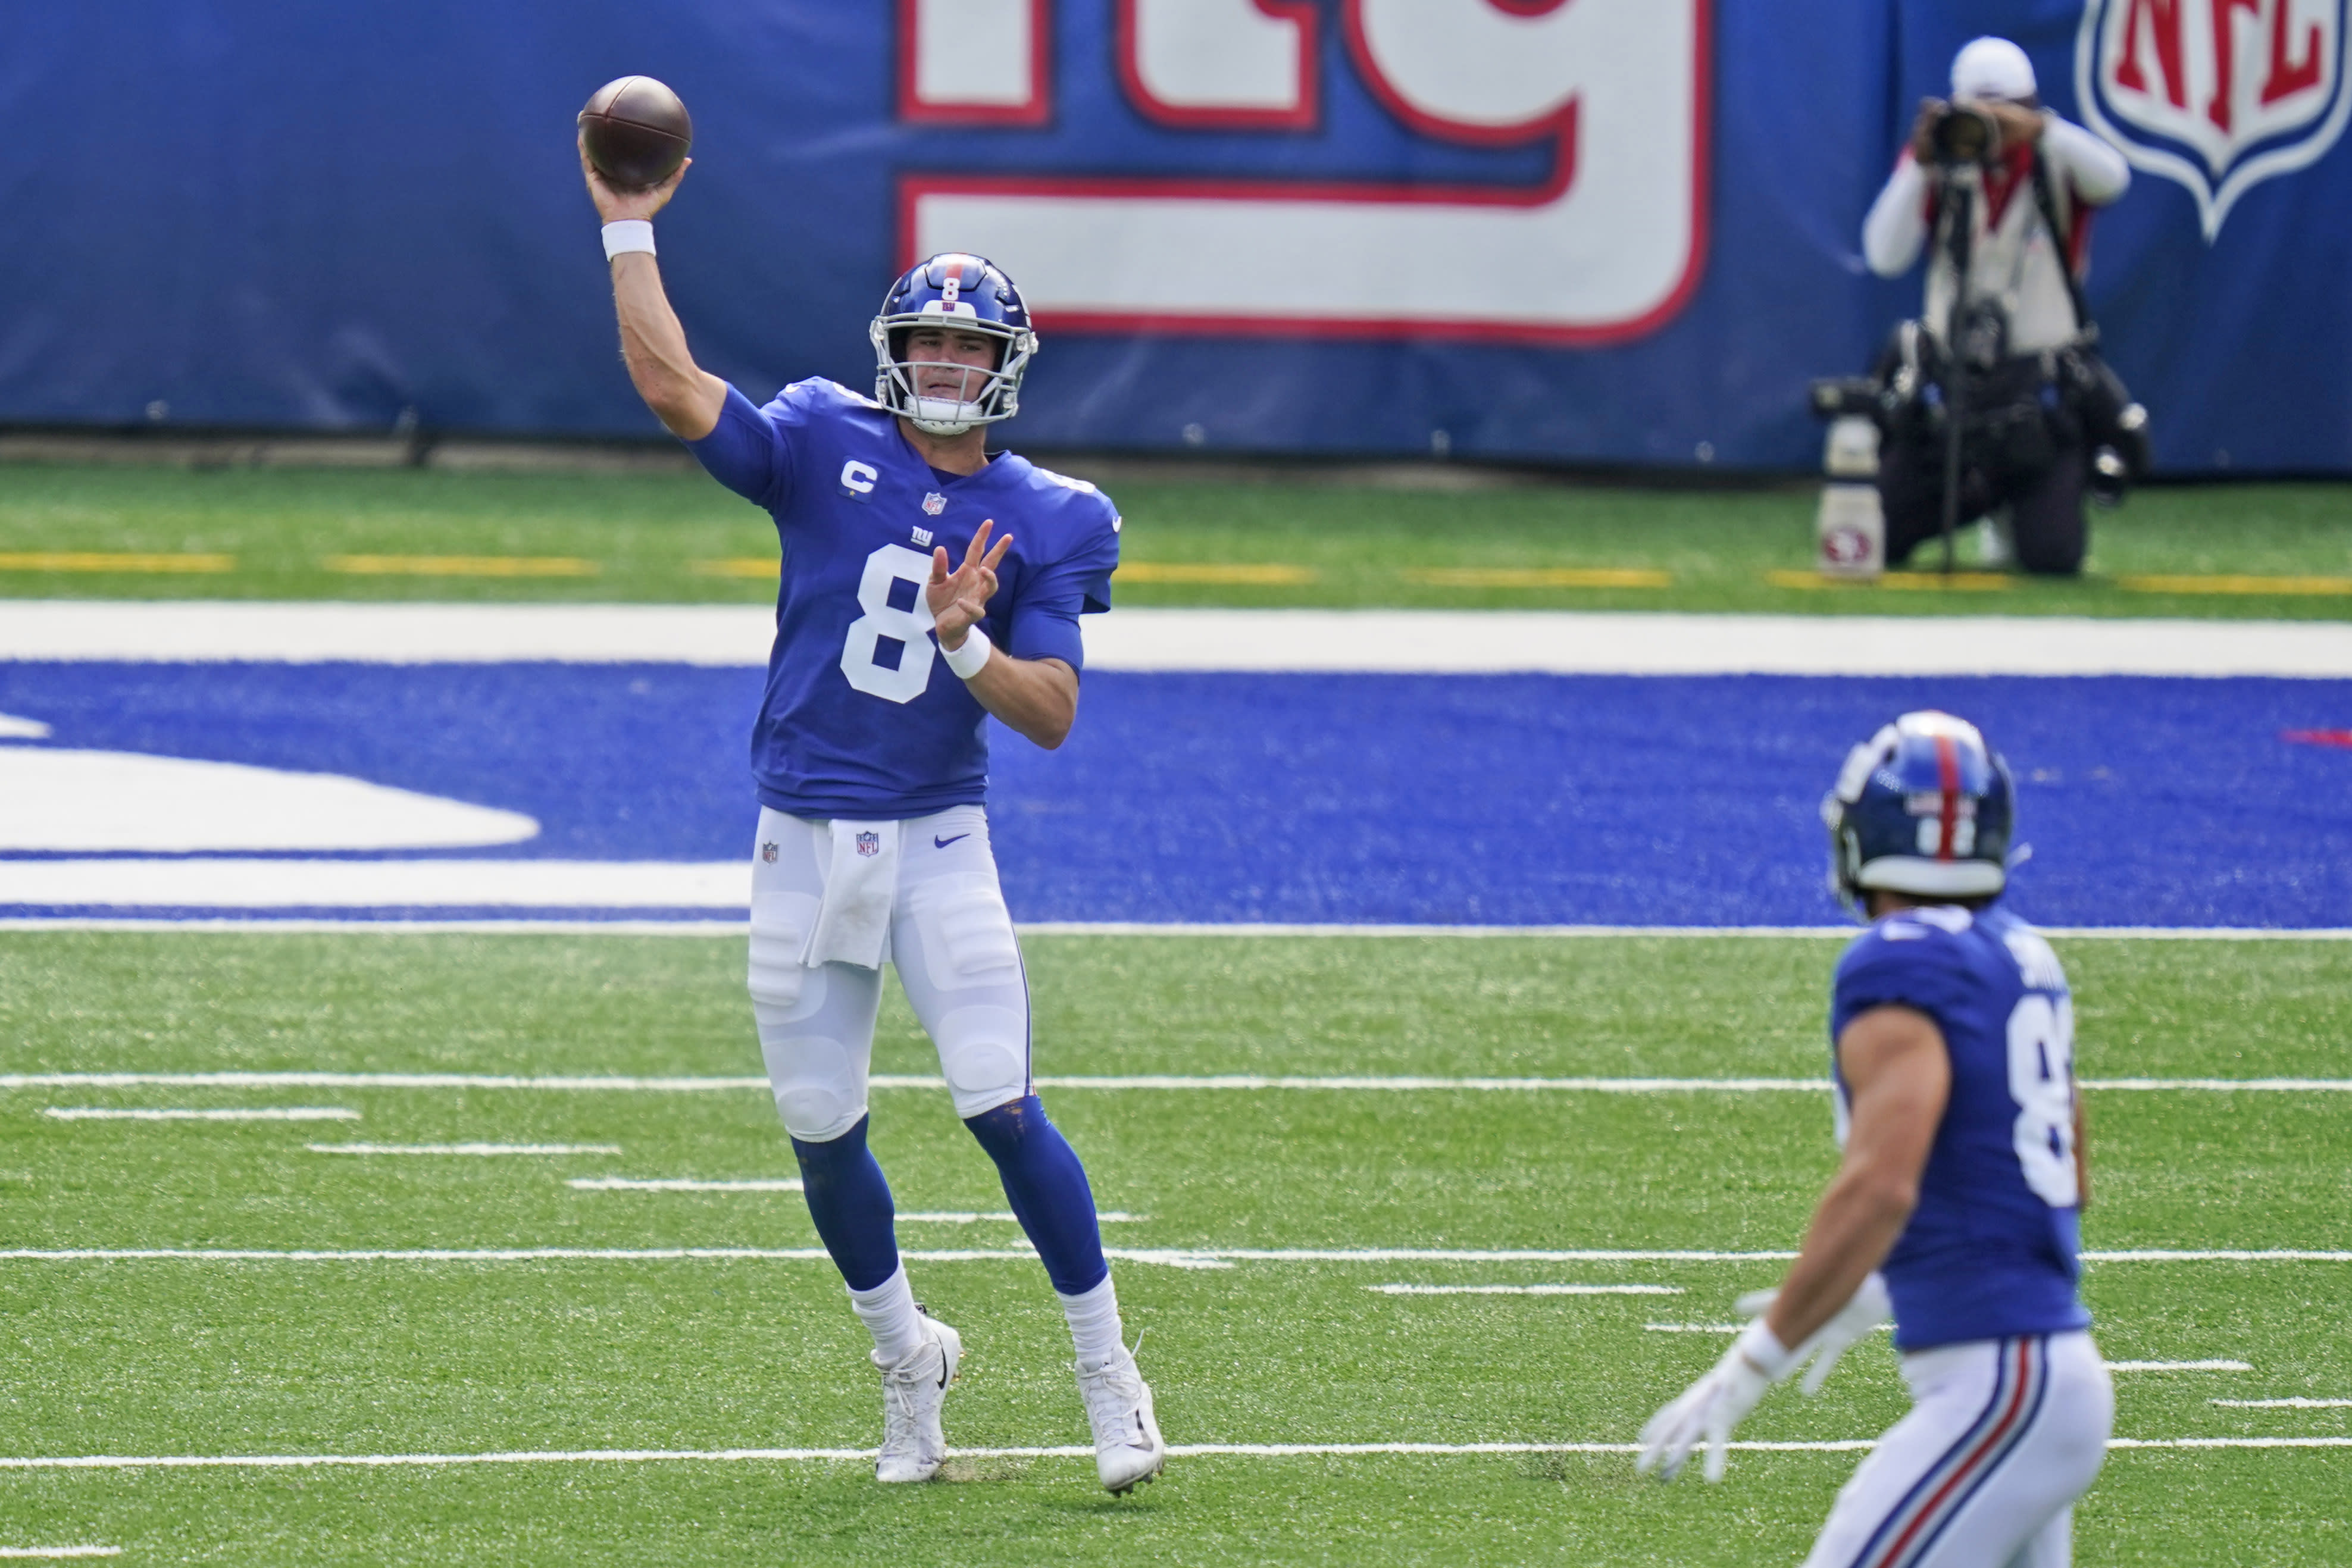 New York Giants quarterback Daniel Jones throws during the first half of an NFL football game against the San Francisco 49ers, Sunday, Sept. 27, 2020, in East Rutherford, N.J. (AP Photo/Corey Sipkin)